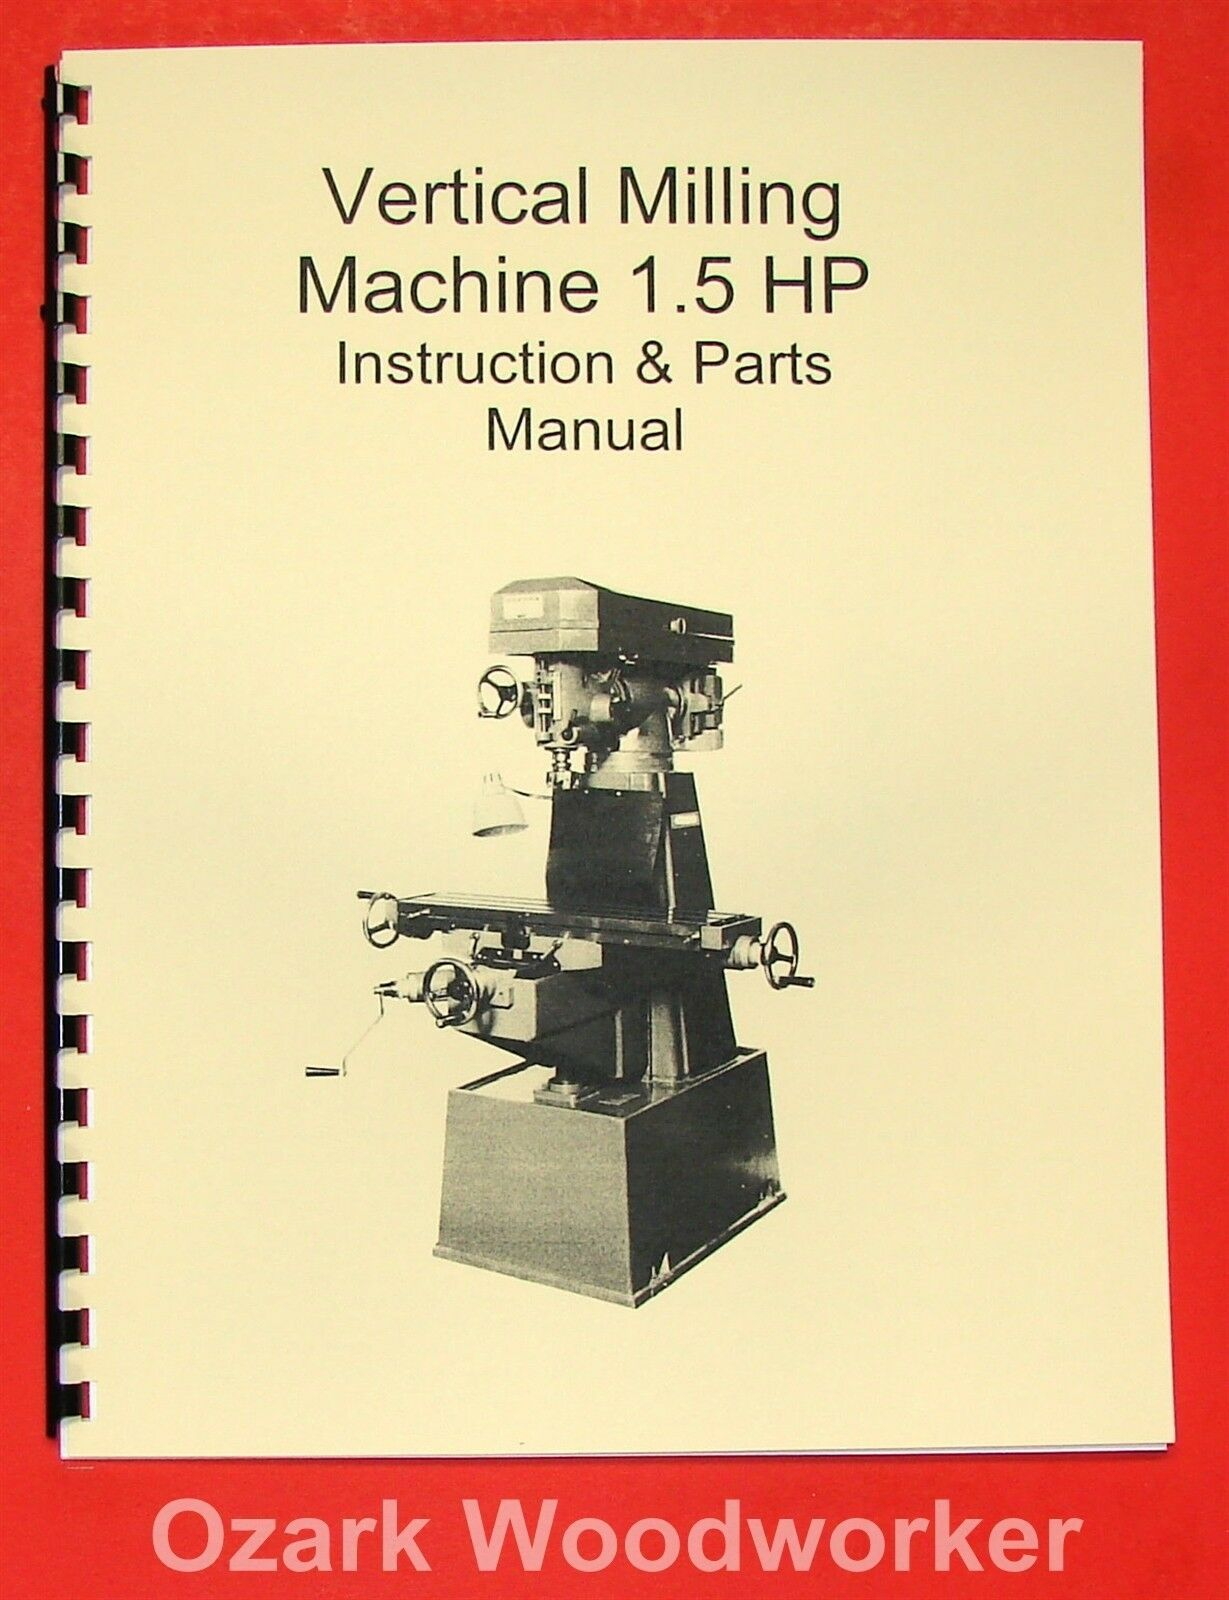 15hp Vertical Mill Manual Jet Enco Grizzly Msc Asian 0001 Lathe Wiring Diagram 1 Of 1free Shipping